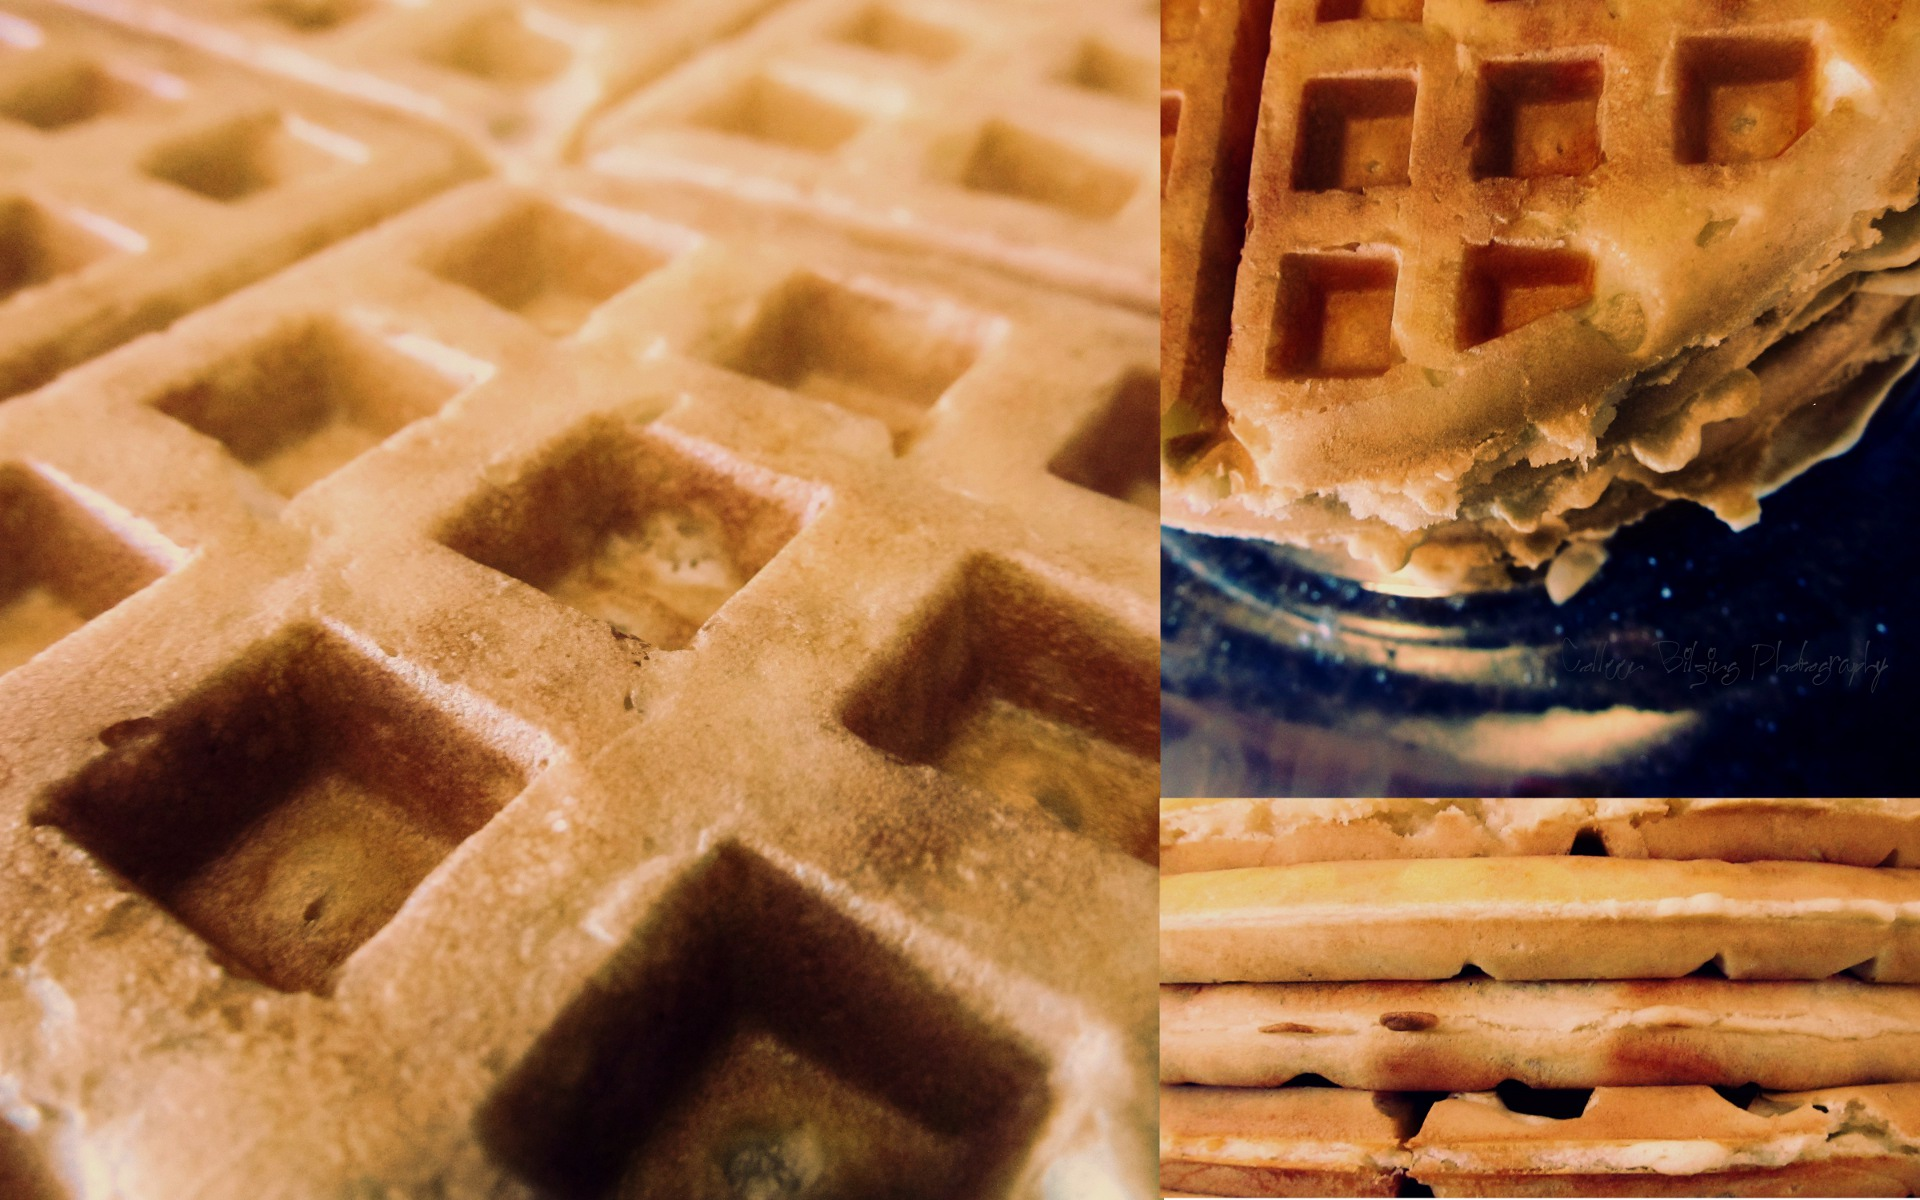 High Definition Live Waffle Backgrounds - 39535967, Cristobal Morley